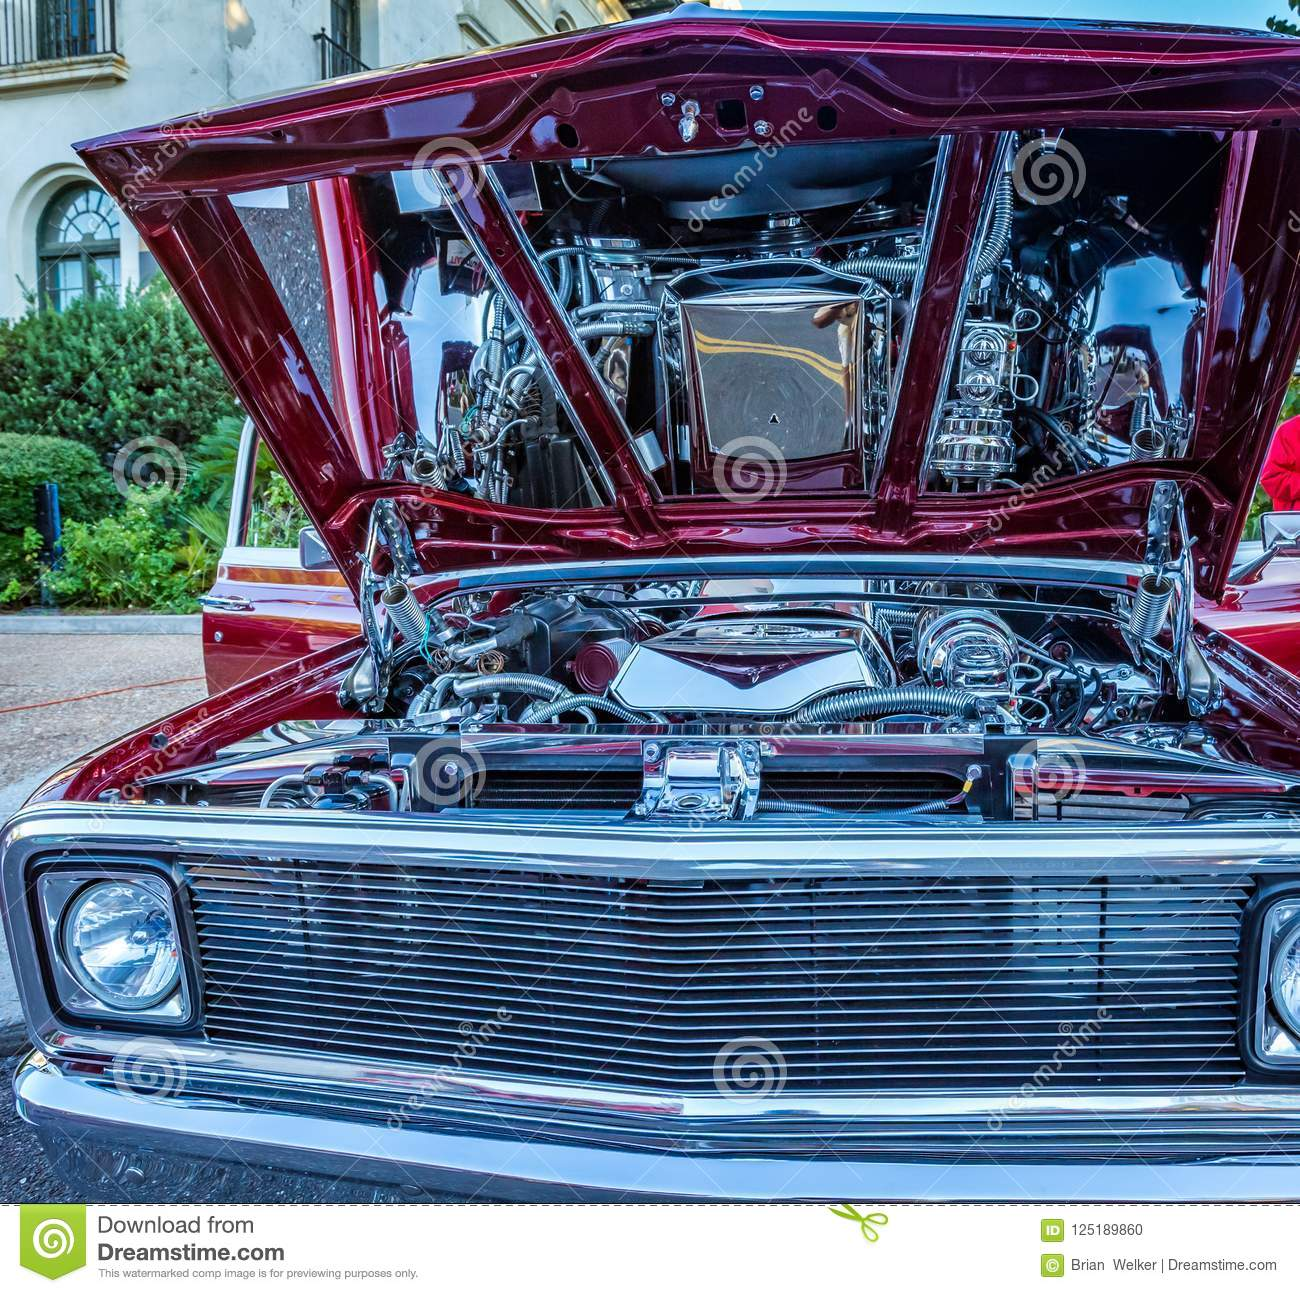 Customized Chevrolet Pickup Truck Editorial Image Image Of - Amelia island classic car show